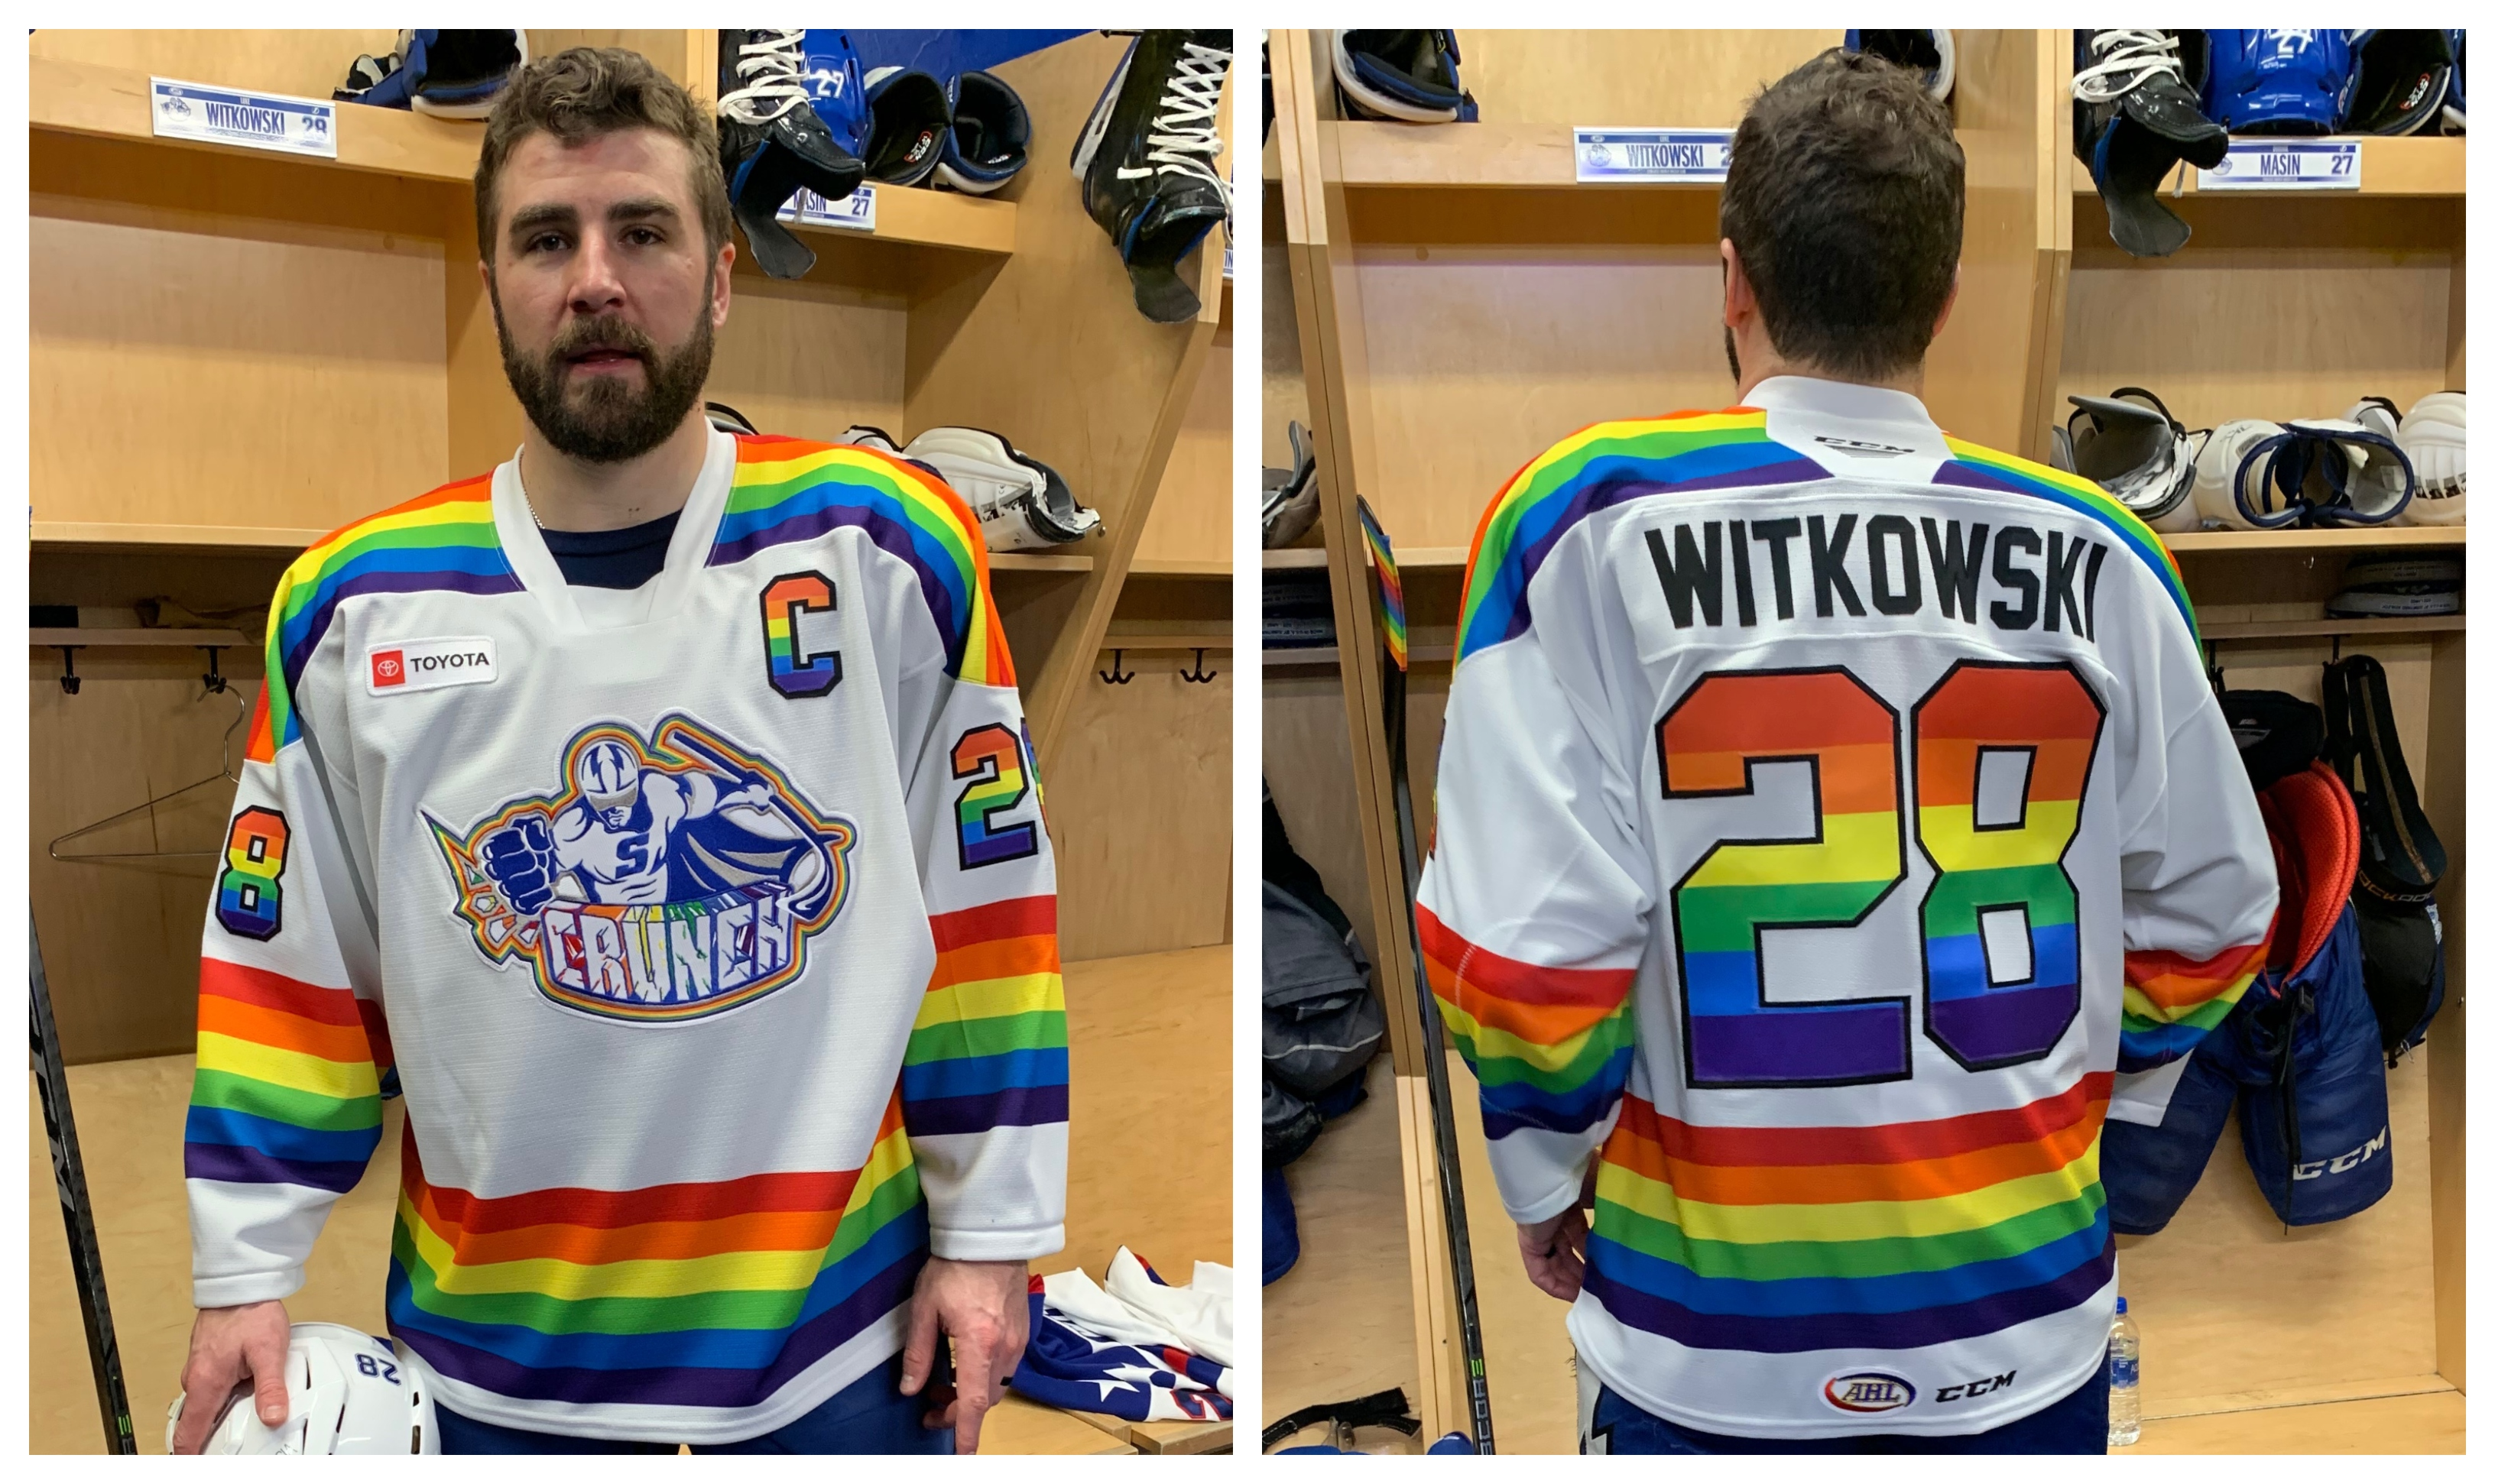 Syracuse Crunch owner Howard Dolgon on Pride Night jerseys: 'This team is living in 2020'